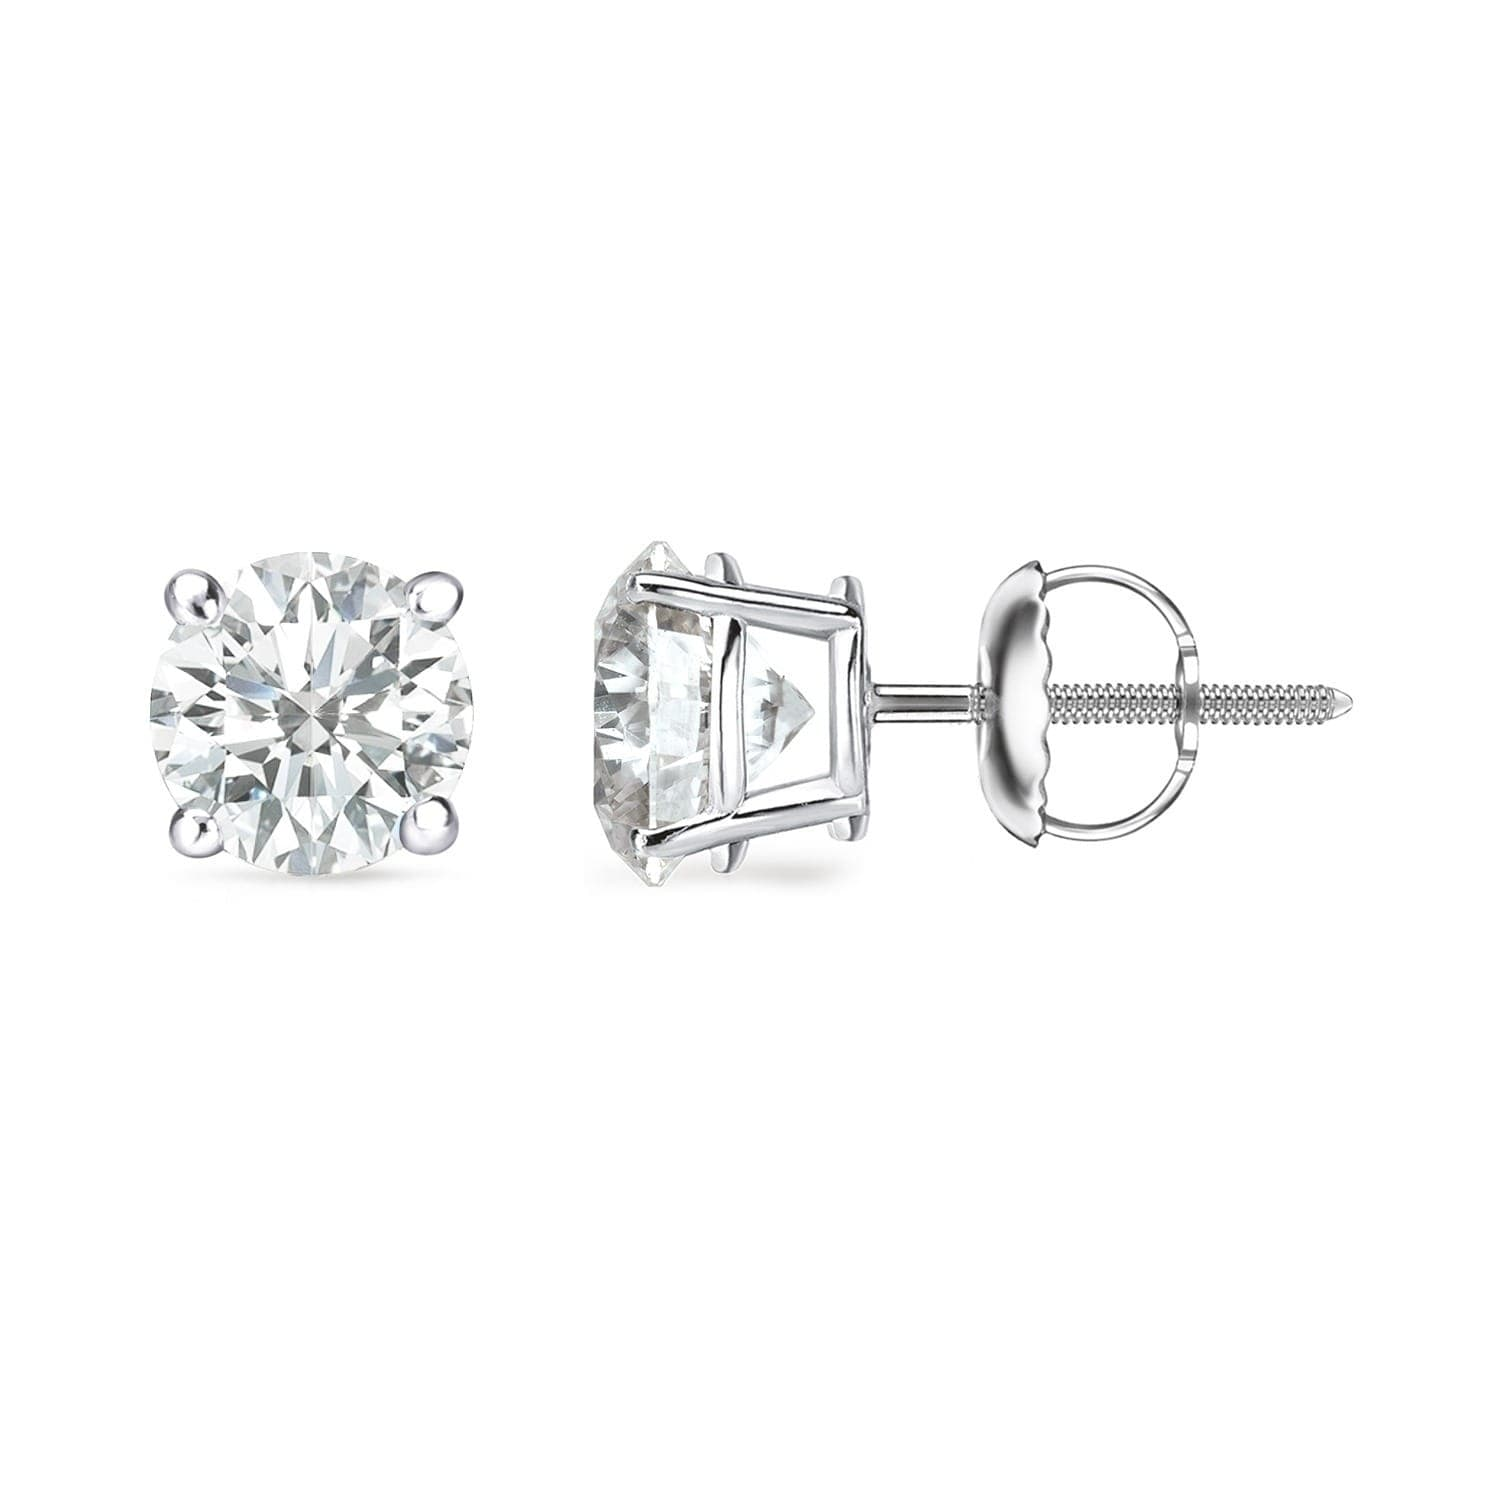 black gold stud carat rose news newsdiamondstuds studs in diamondstuds diamond bkrb earrings